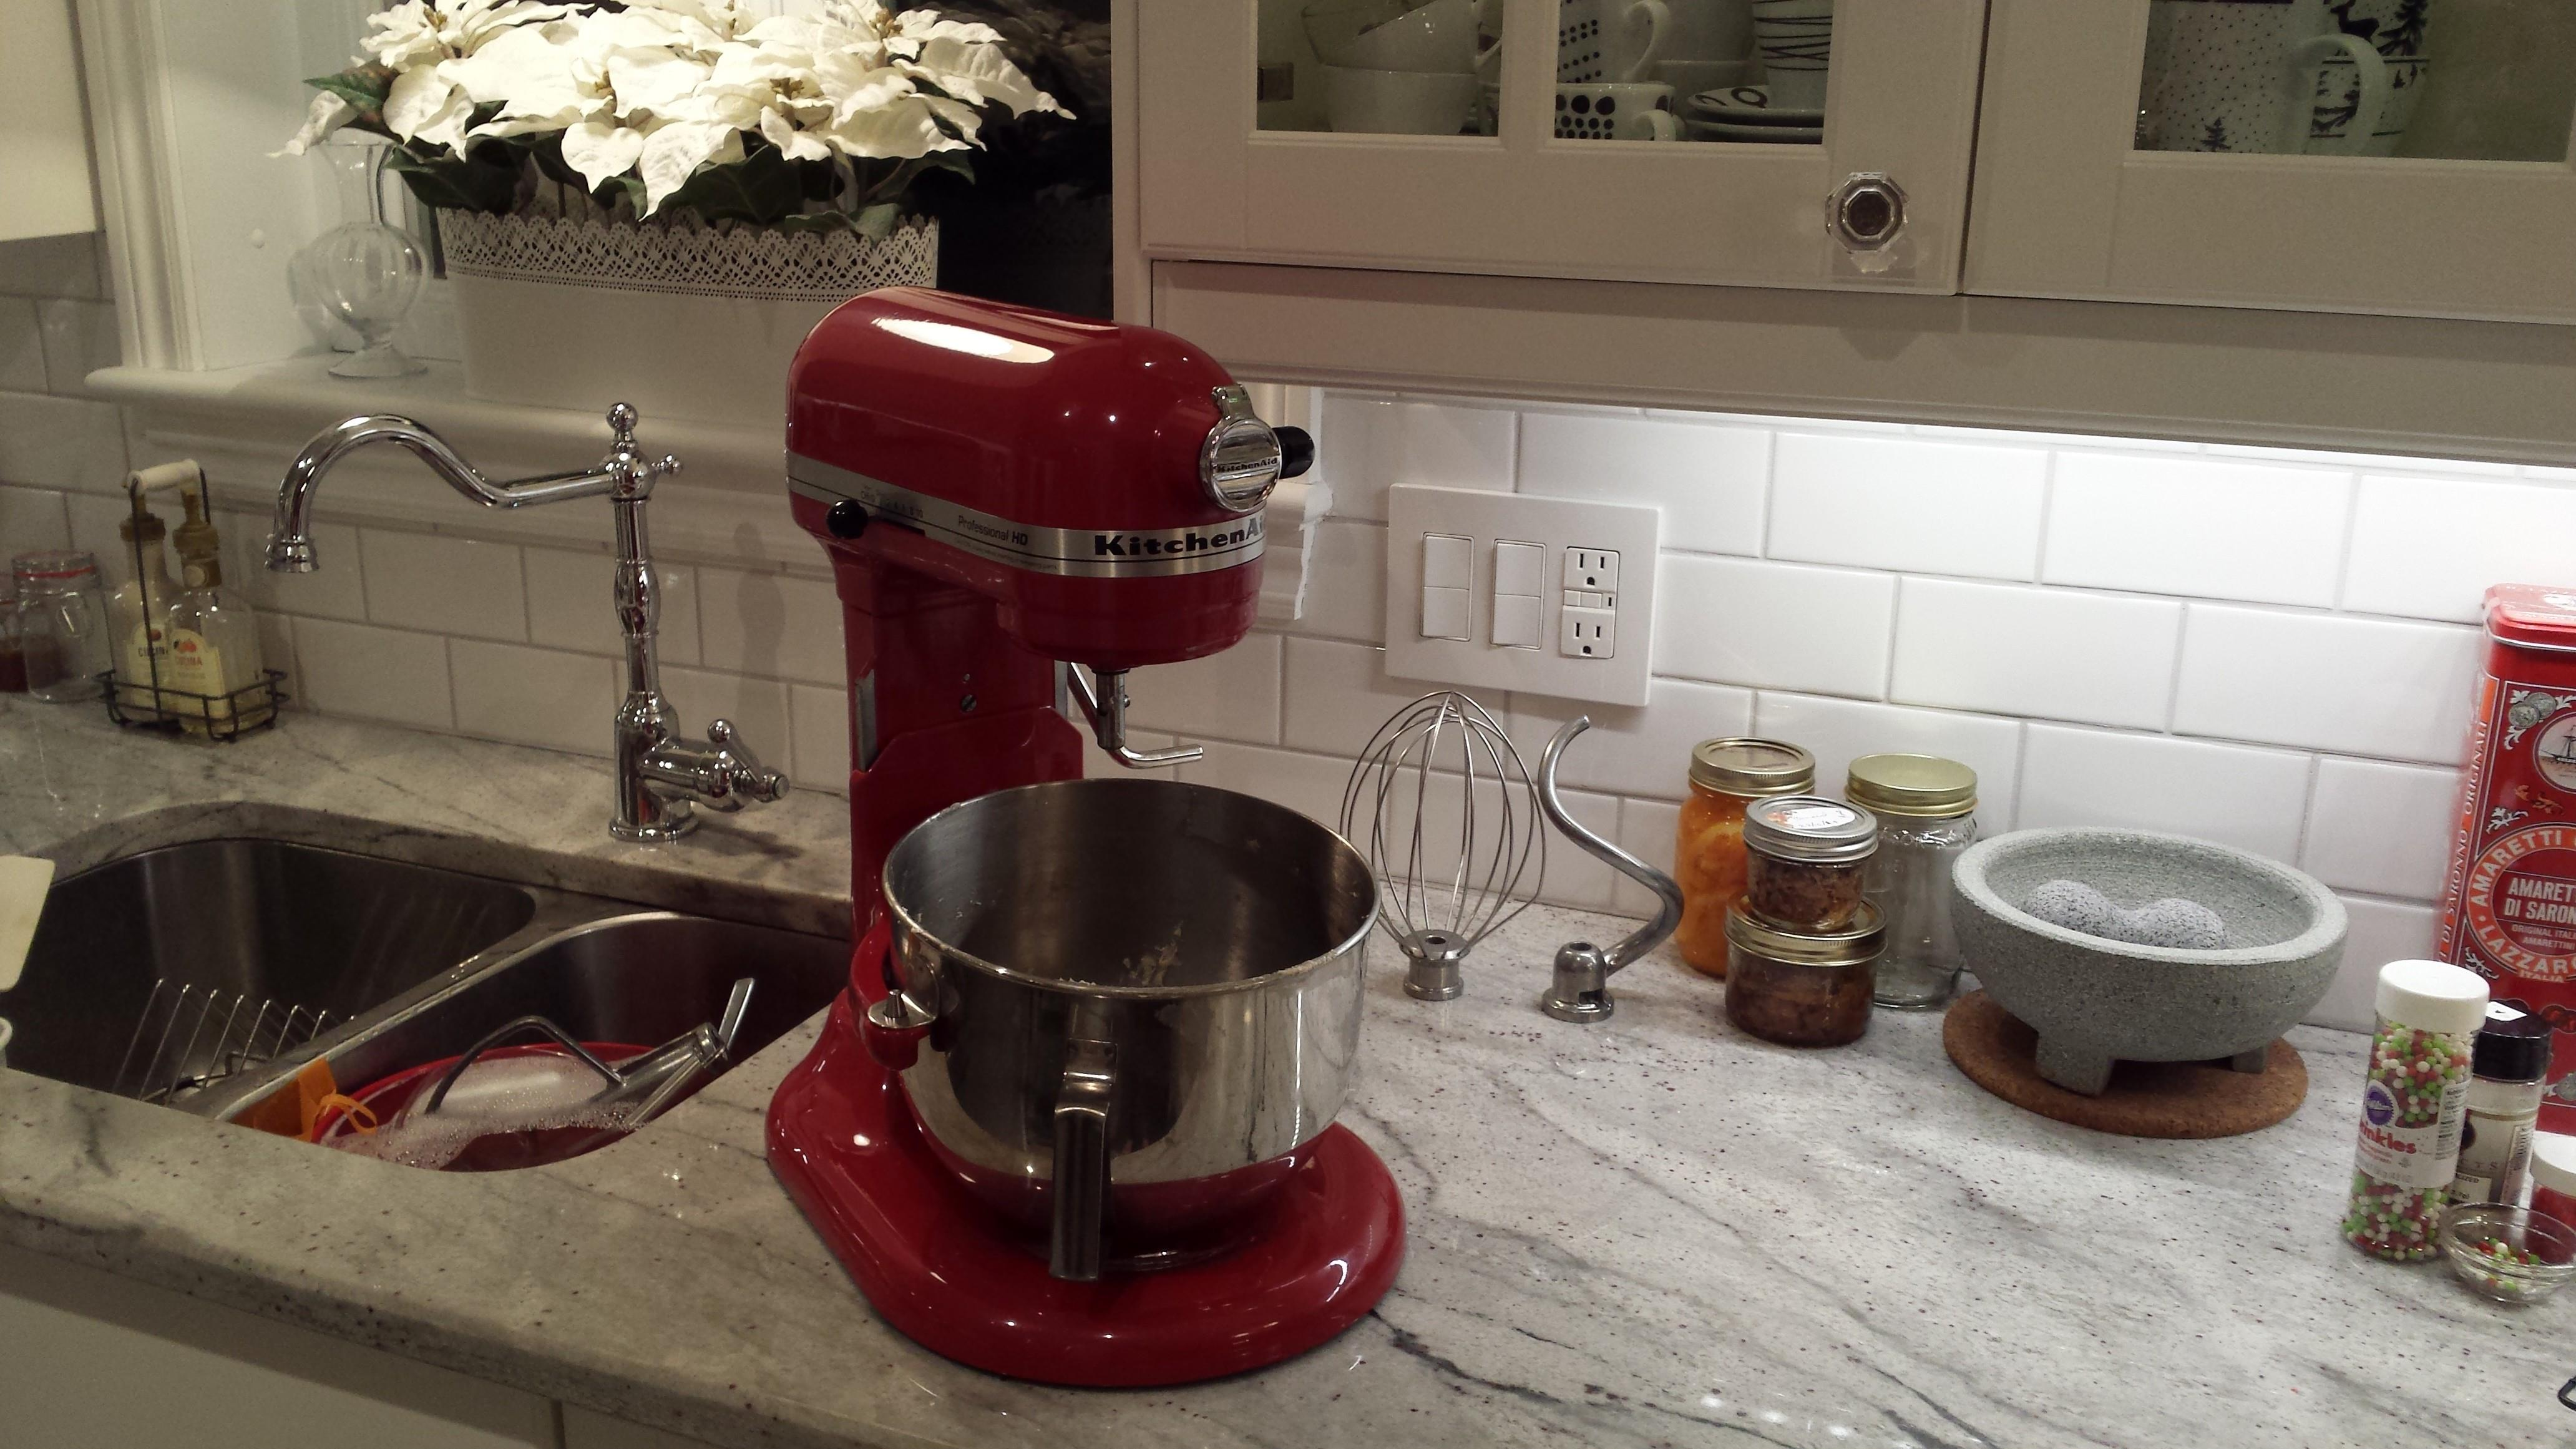 My indispensible KitchenAid Professional Stand Mixer!